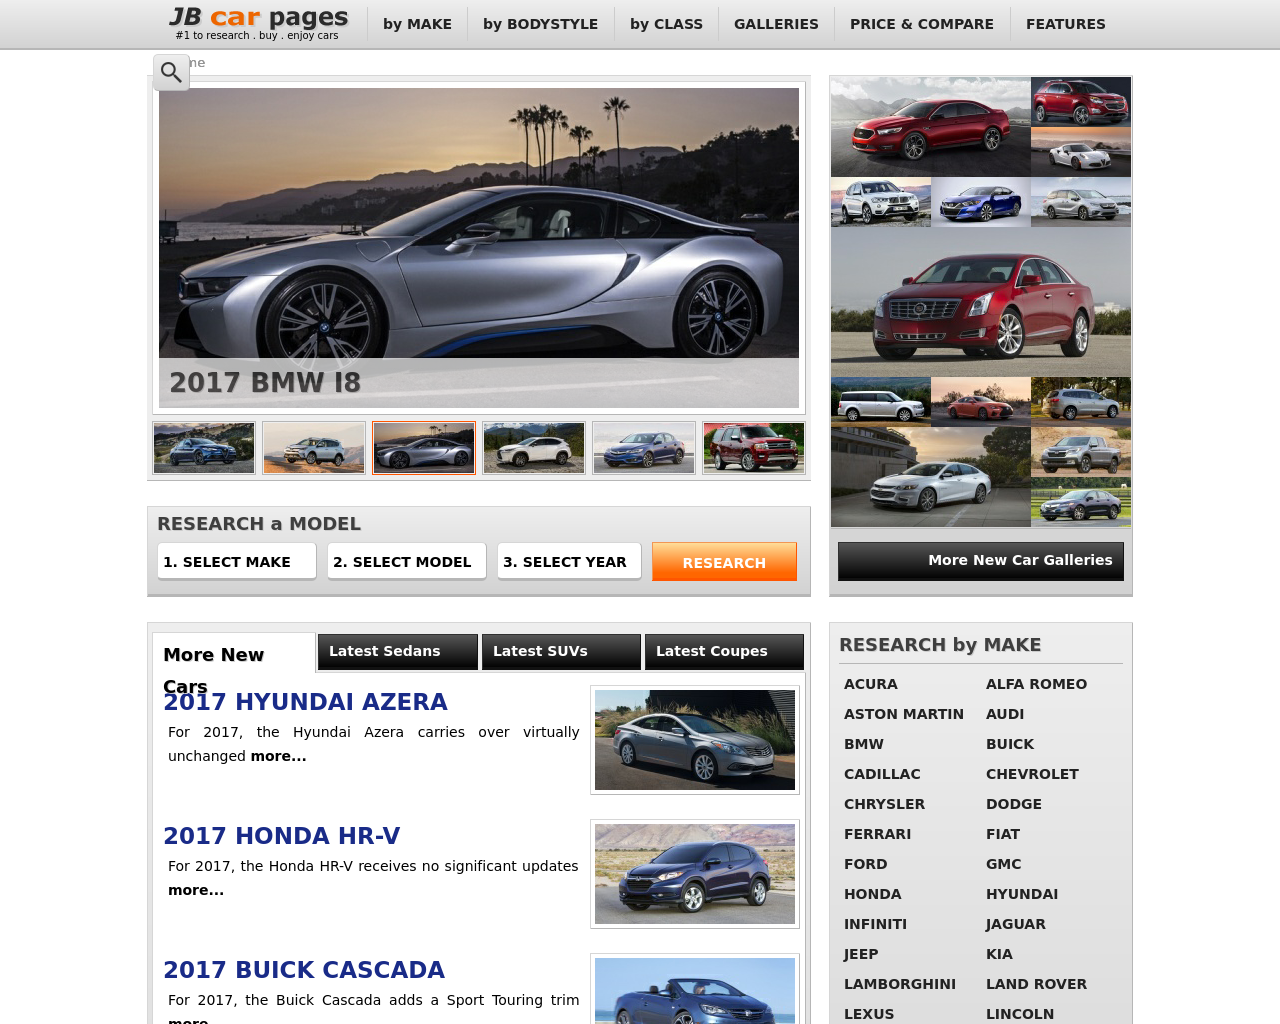 JB-car-pages.com-Advertising-Reviews-Pricing